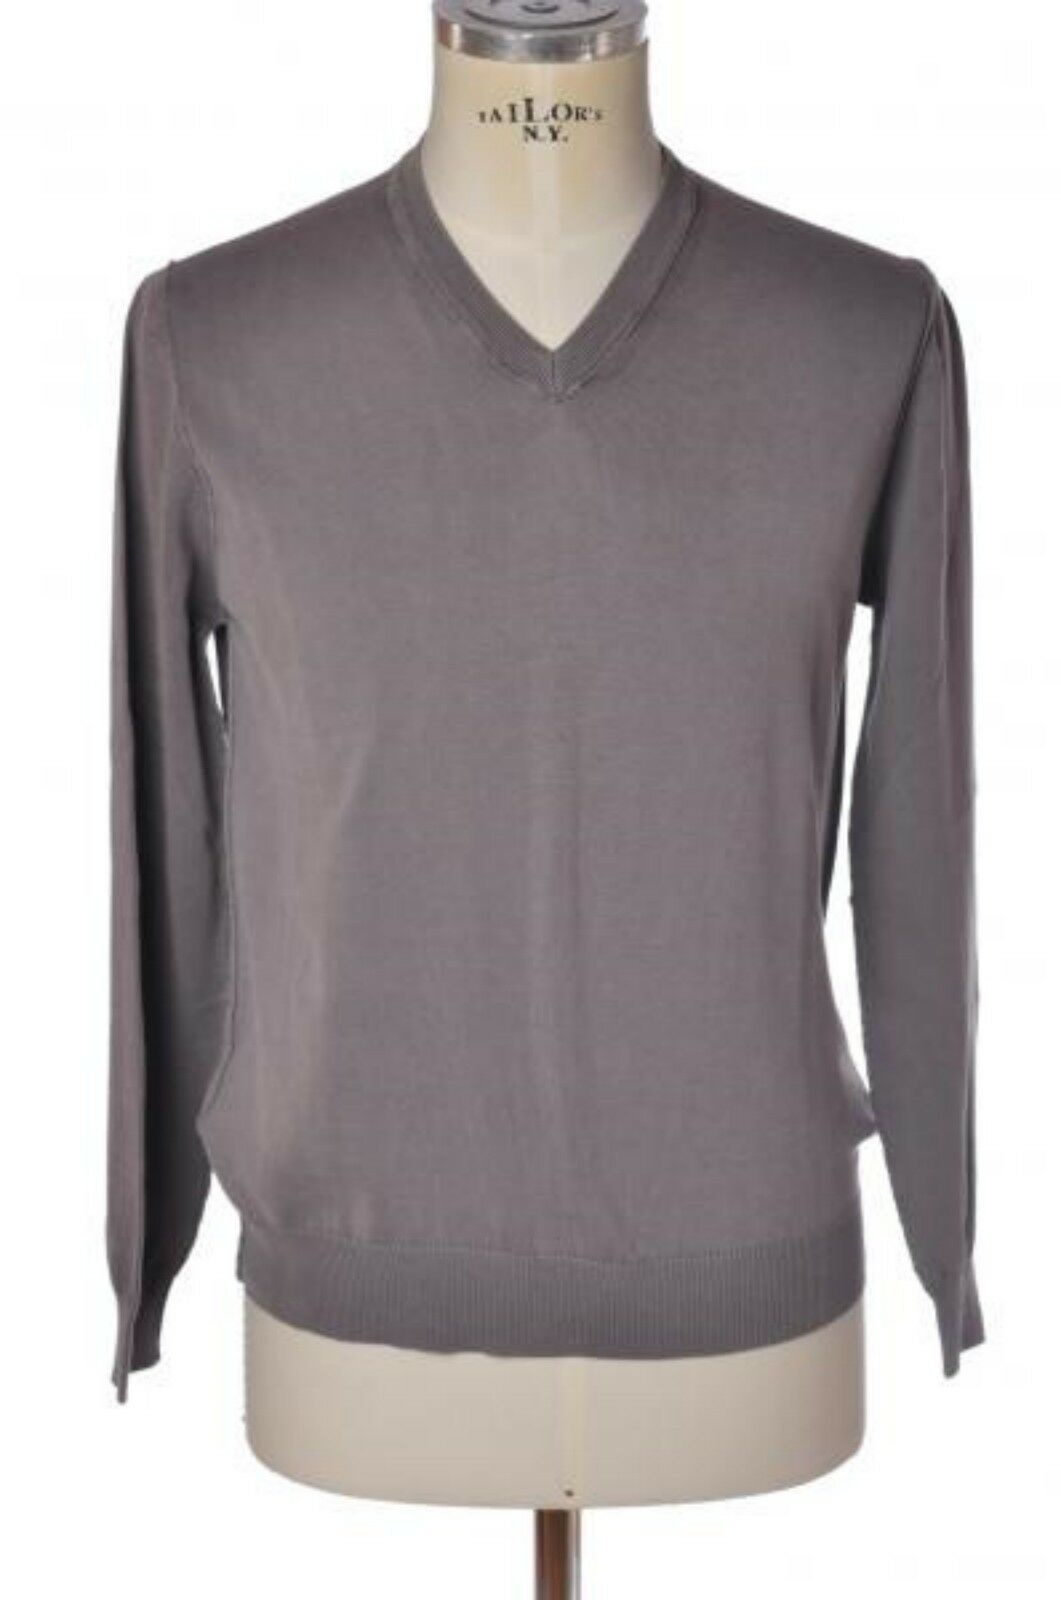 Alpha  -  Sweaters - Male - 46 - Grey - 1485818B163709